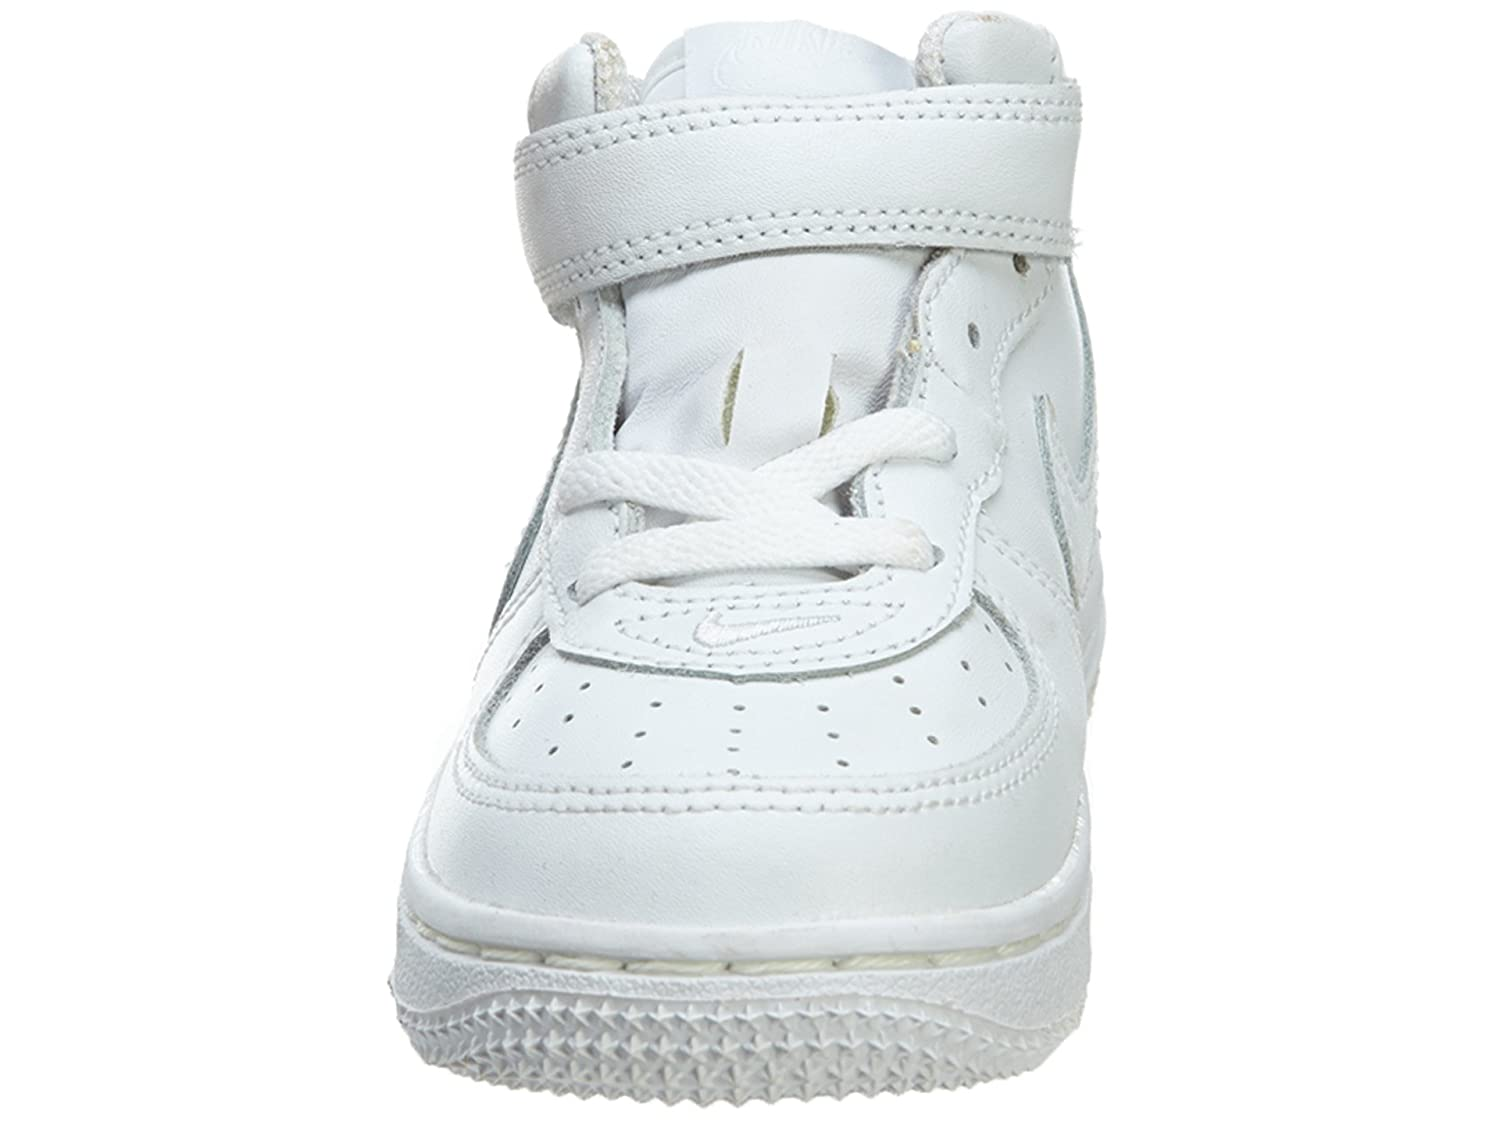 Td 307192-113 Size 9 Toddlers 307192 Style Nike Force 1 Mid